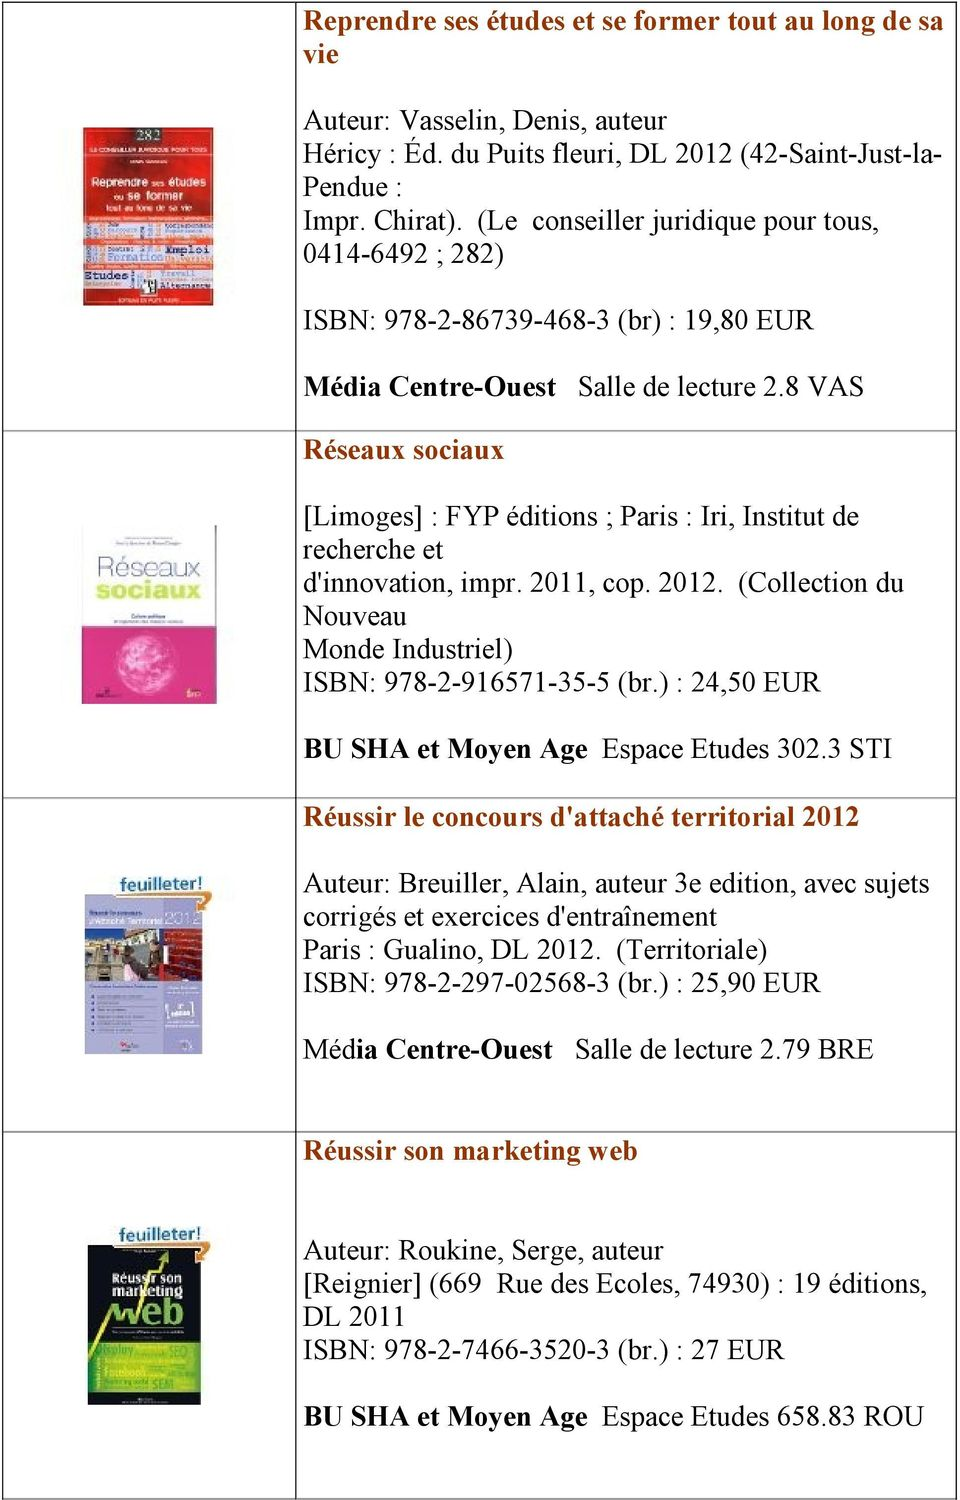 8 VAS Réseaux sociaux [Limoges] : FYP éditions ; Paris : Iri, Institut de recherche et d'innovation, impr. 2011, cop. 2012. (Collection du Nouveau Monde Industriel) ISBN: 978-2-916571-35-5 (br.